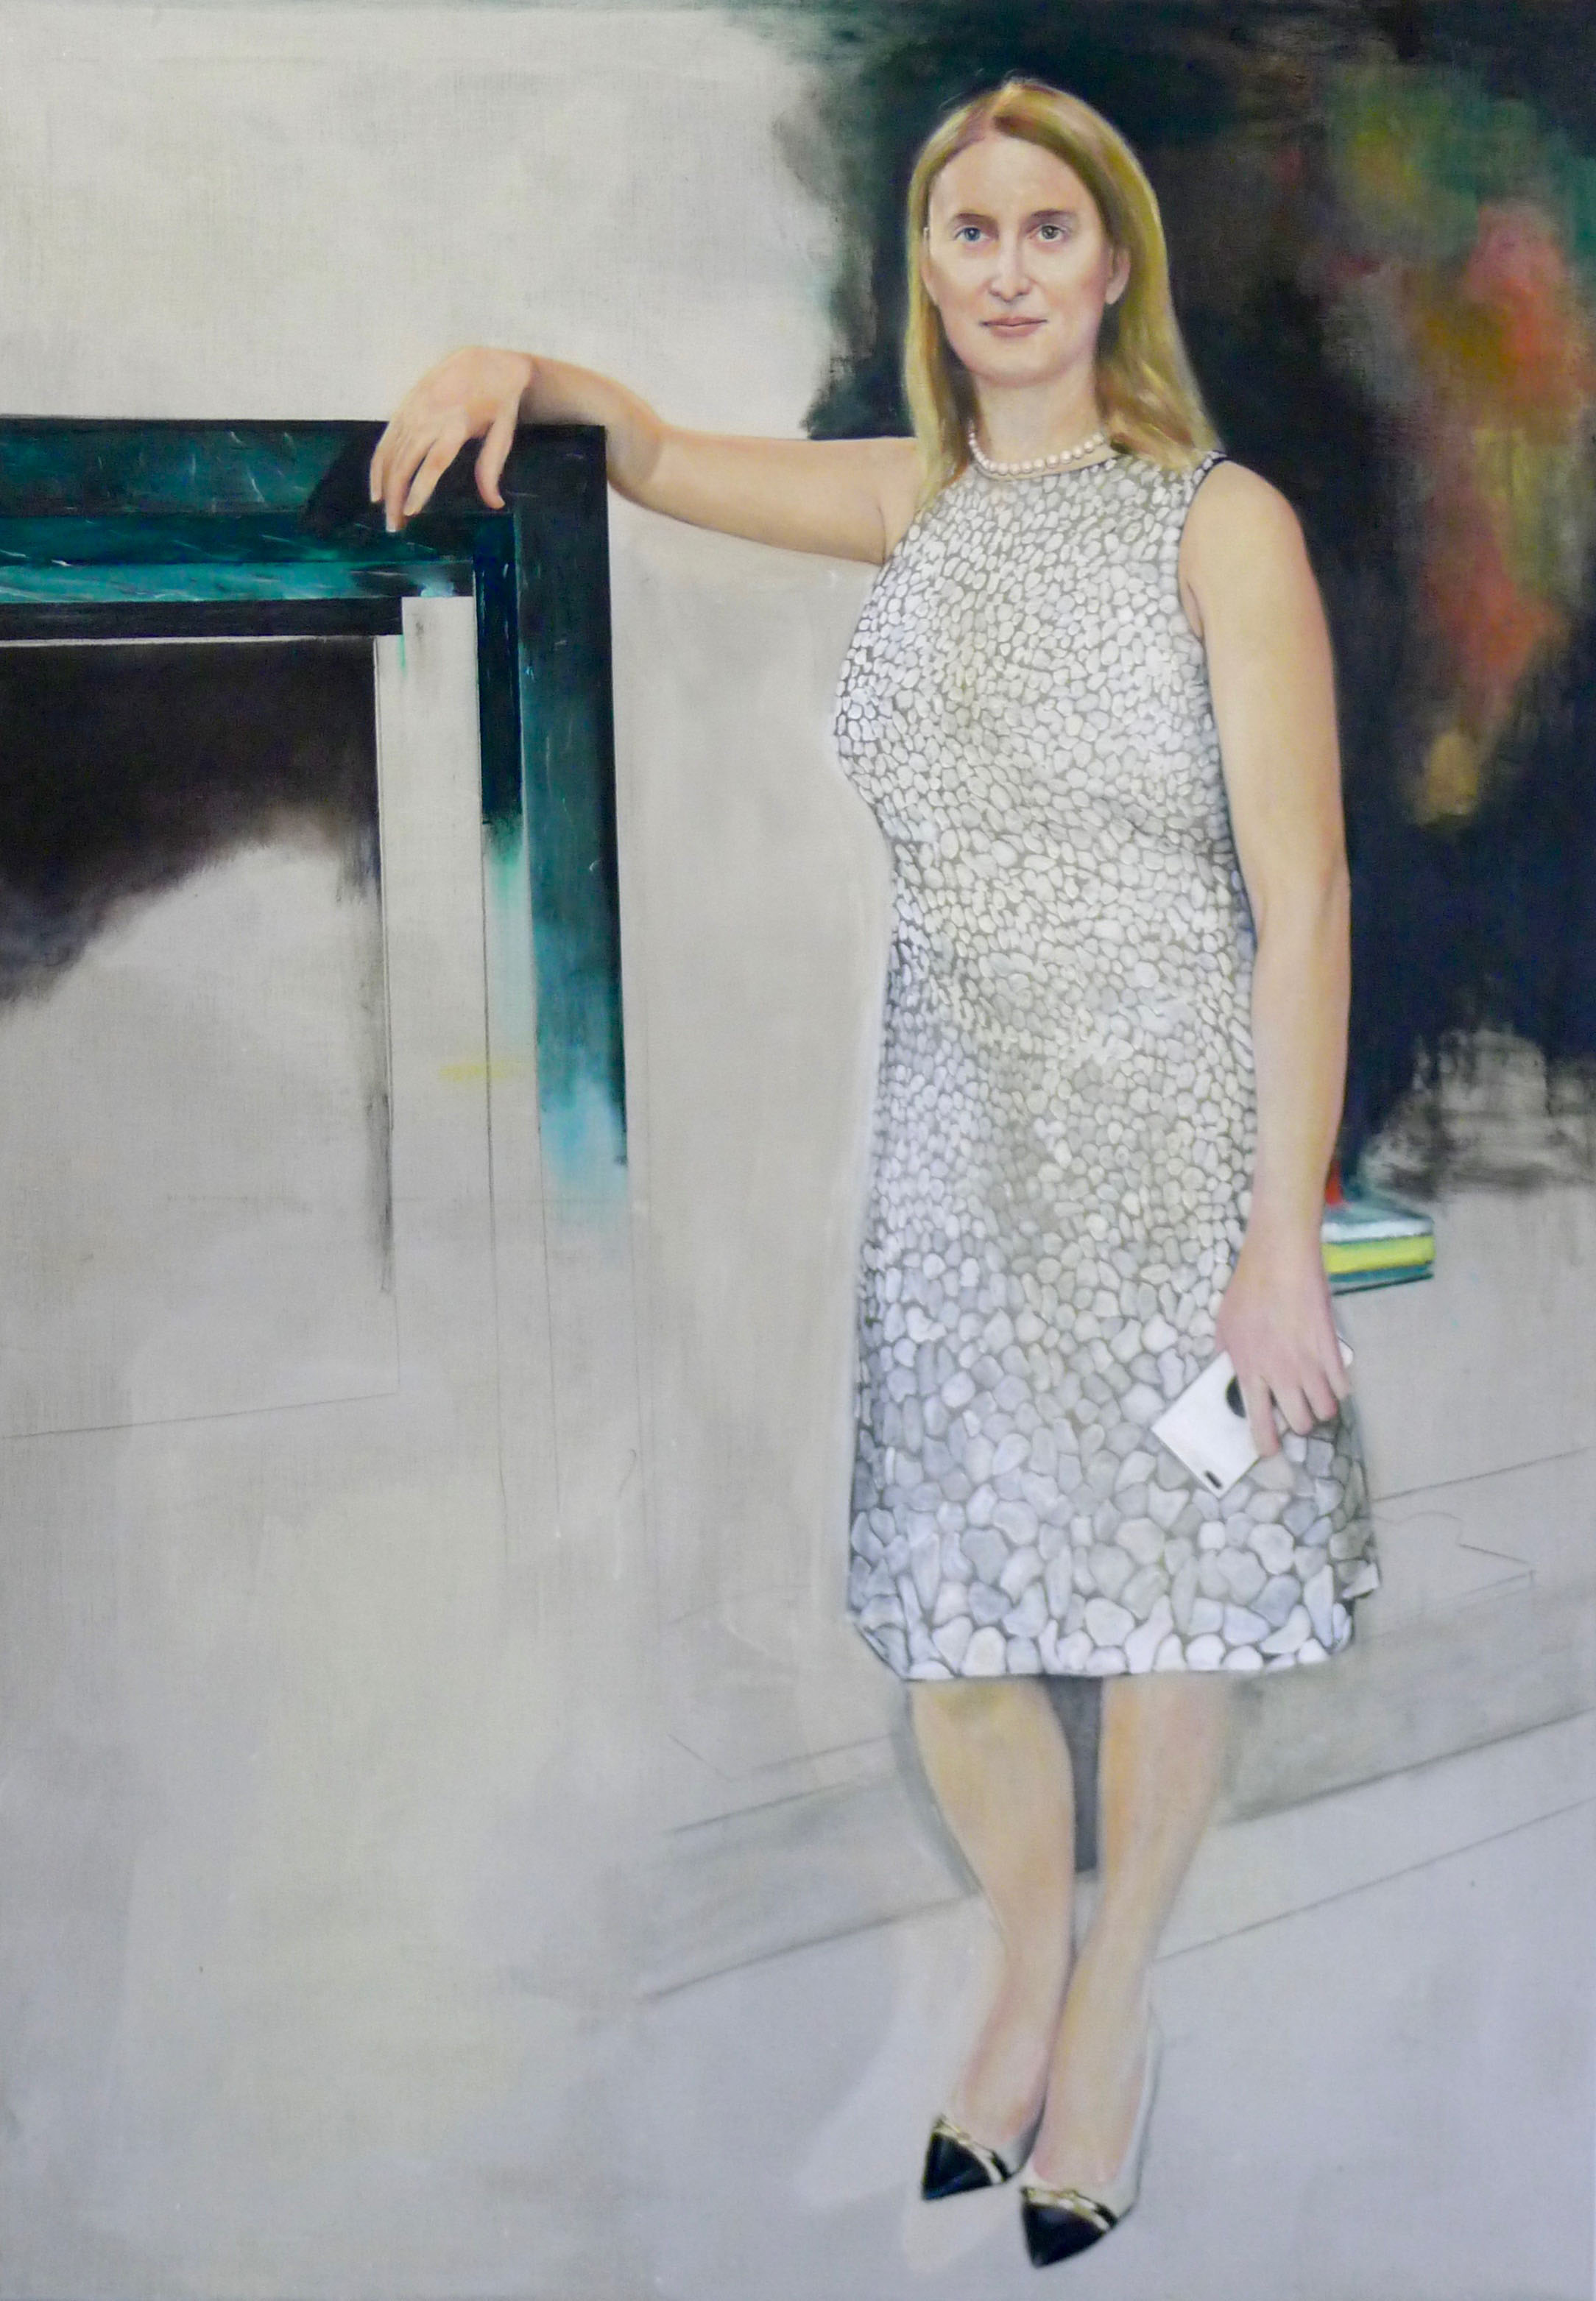 Ms Bea Knecht, oil on canvas, 200x140cm, 2018/19